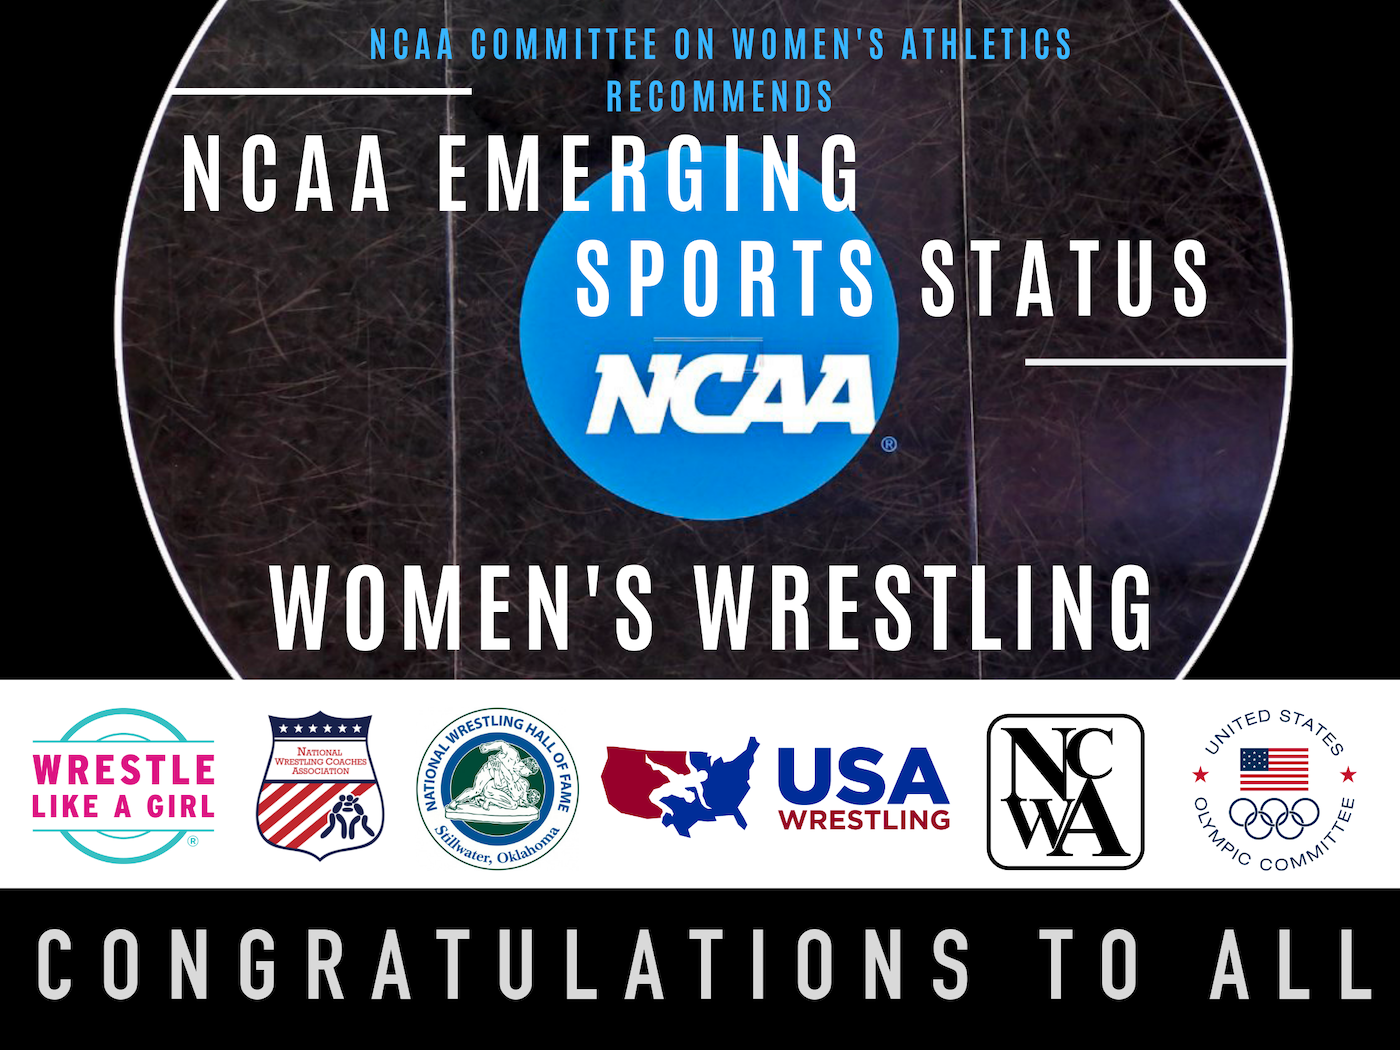 NCAA RECOMMENDS EMERGING SPORTS STATUS FOR WOMEN'S WRESTLING - For Immediate Release, 3 June 2019